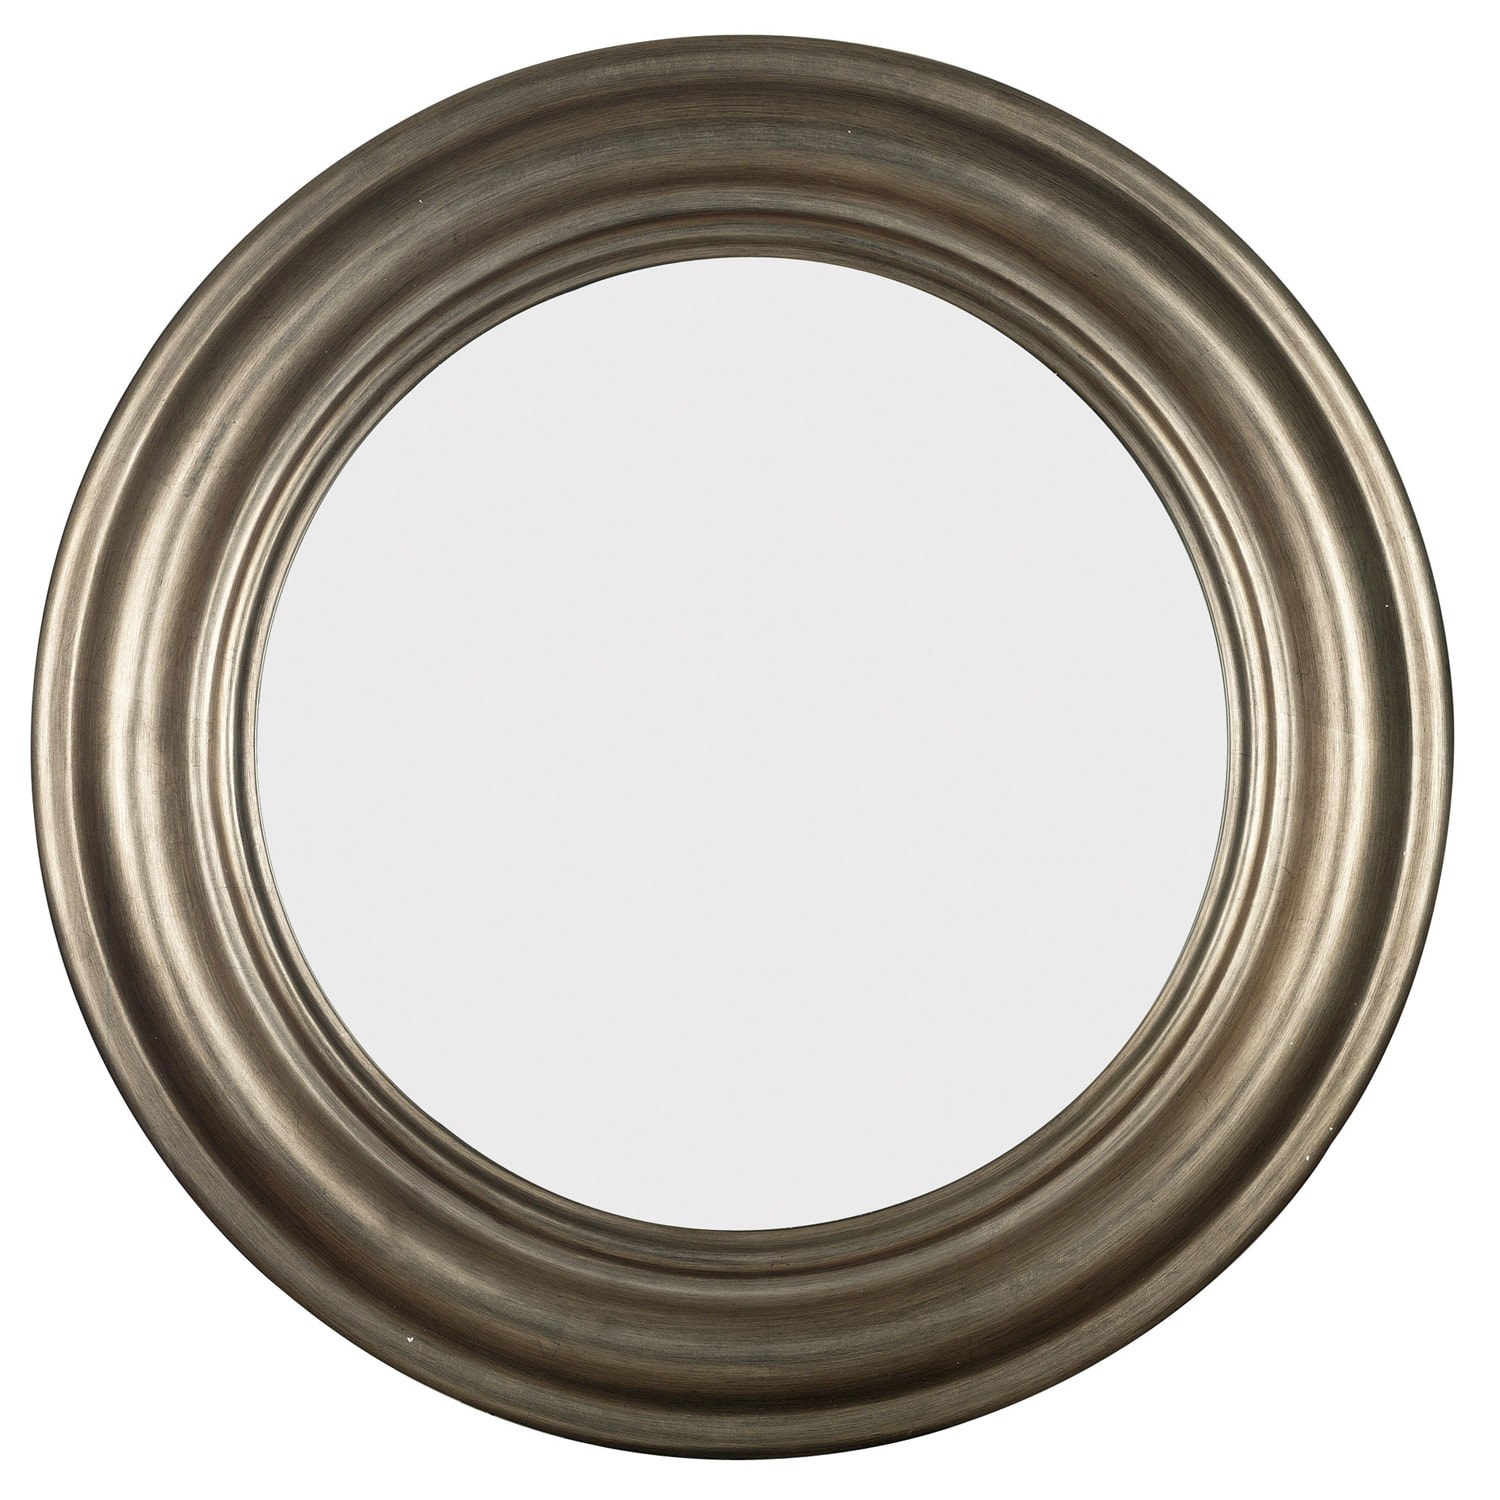 Pasco Round Antique Silver Wall Mirror Free Shipping Today Throughout Round Antique Mirror (Image 9 of 15)